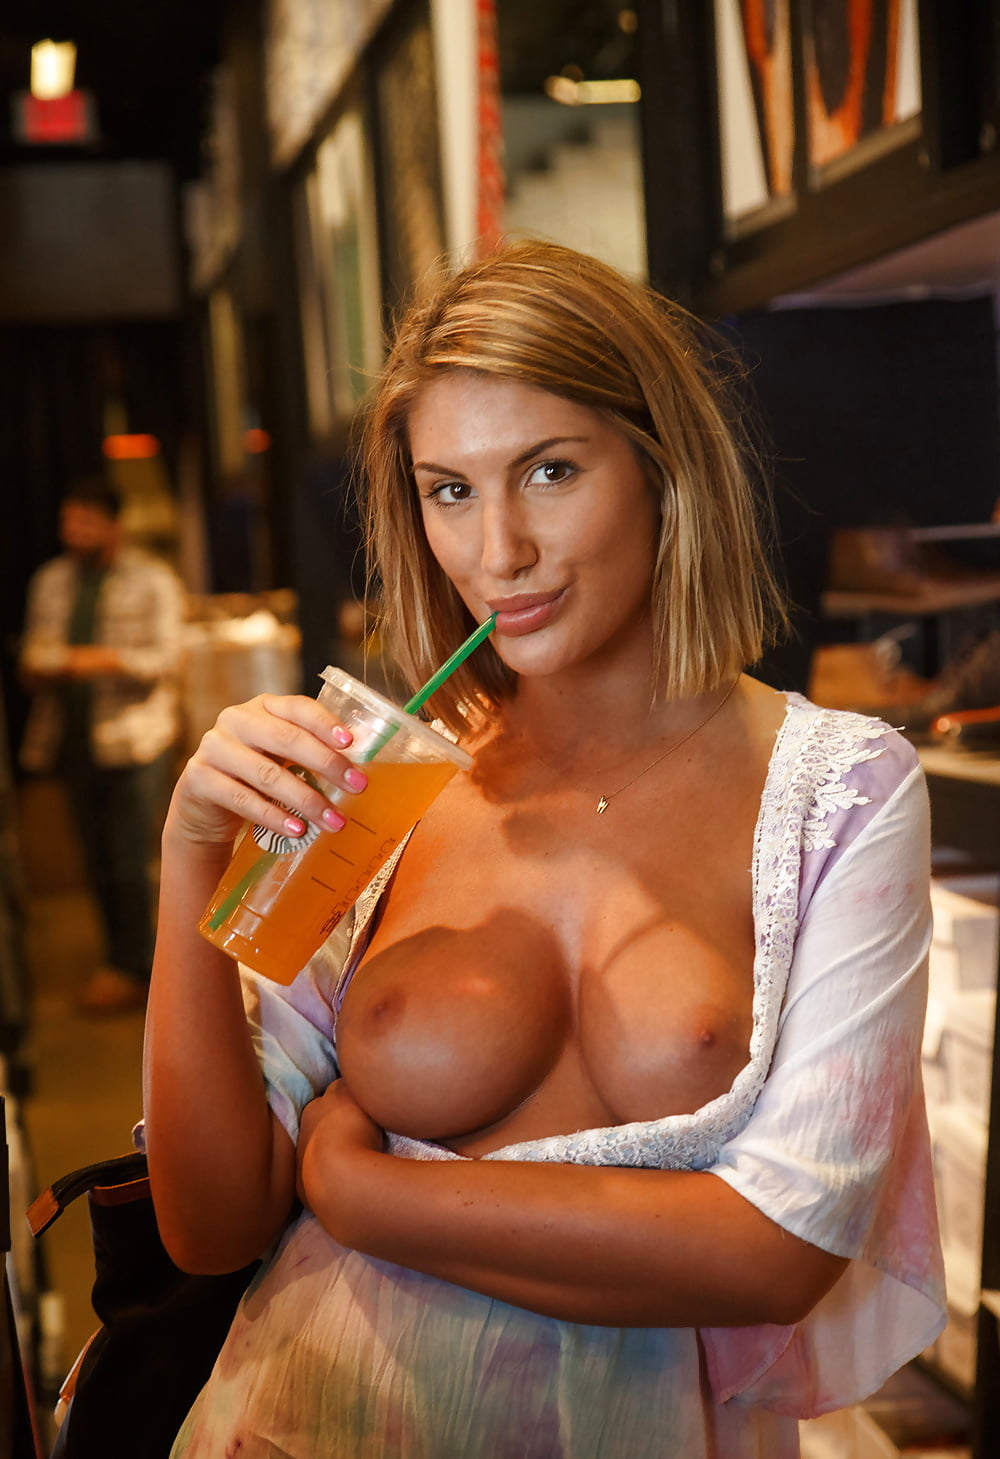 Young hooter tits naked